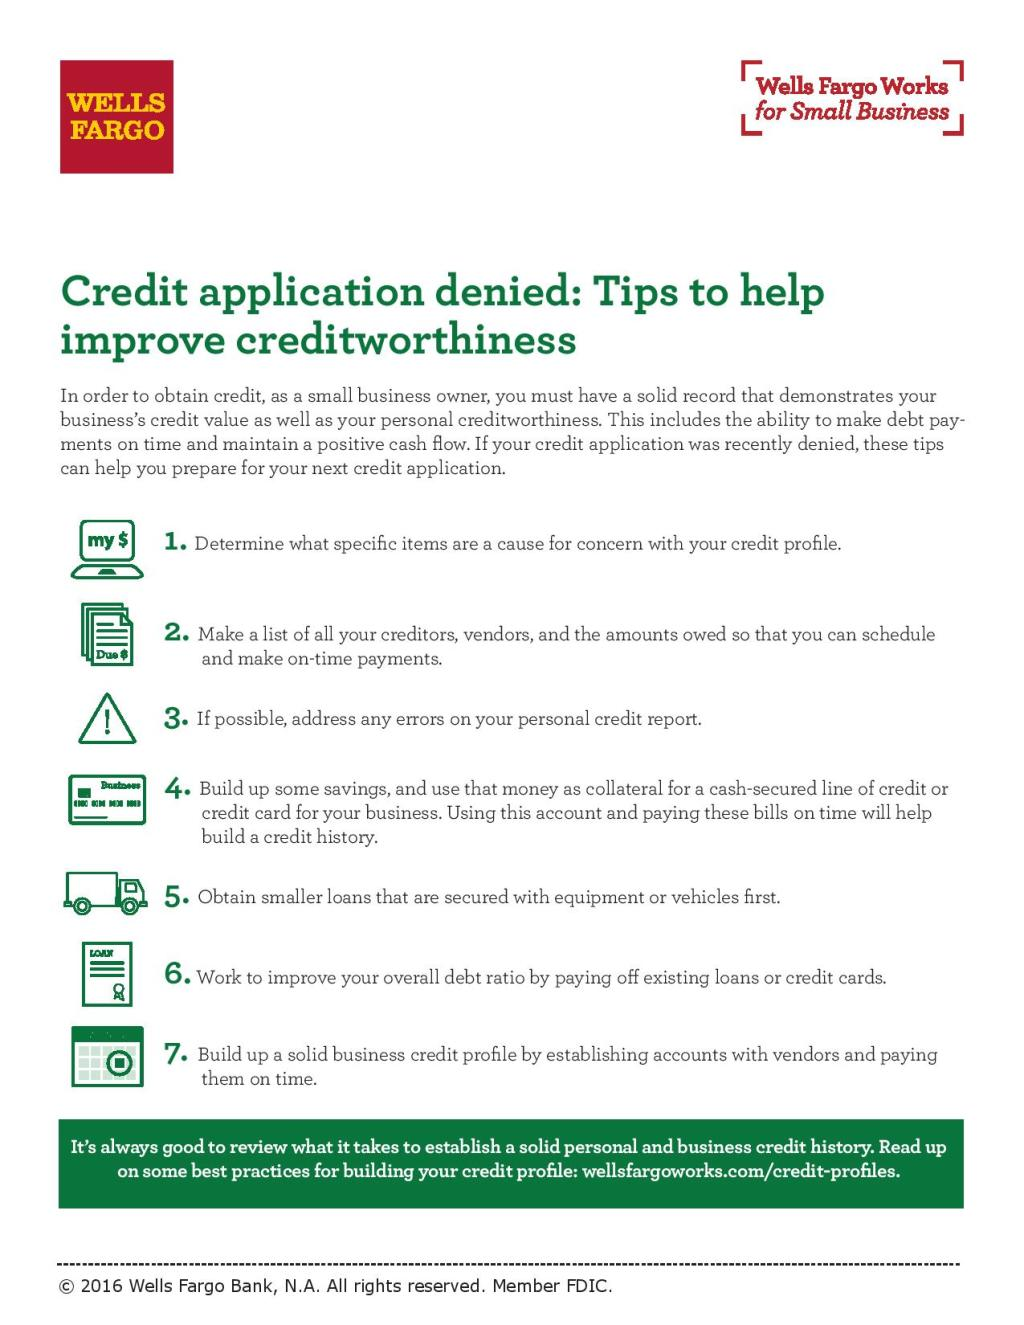 tips for improving creditworthiness wells fargo